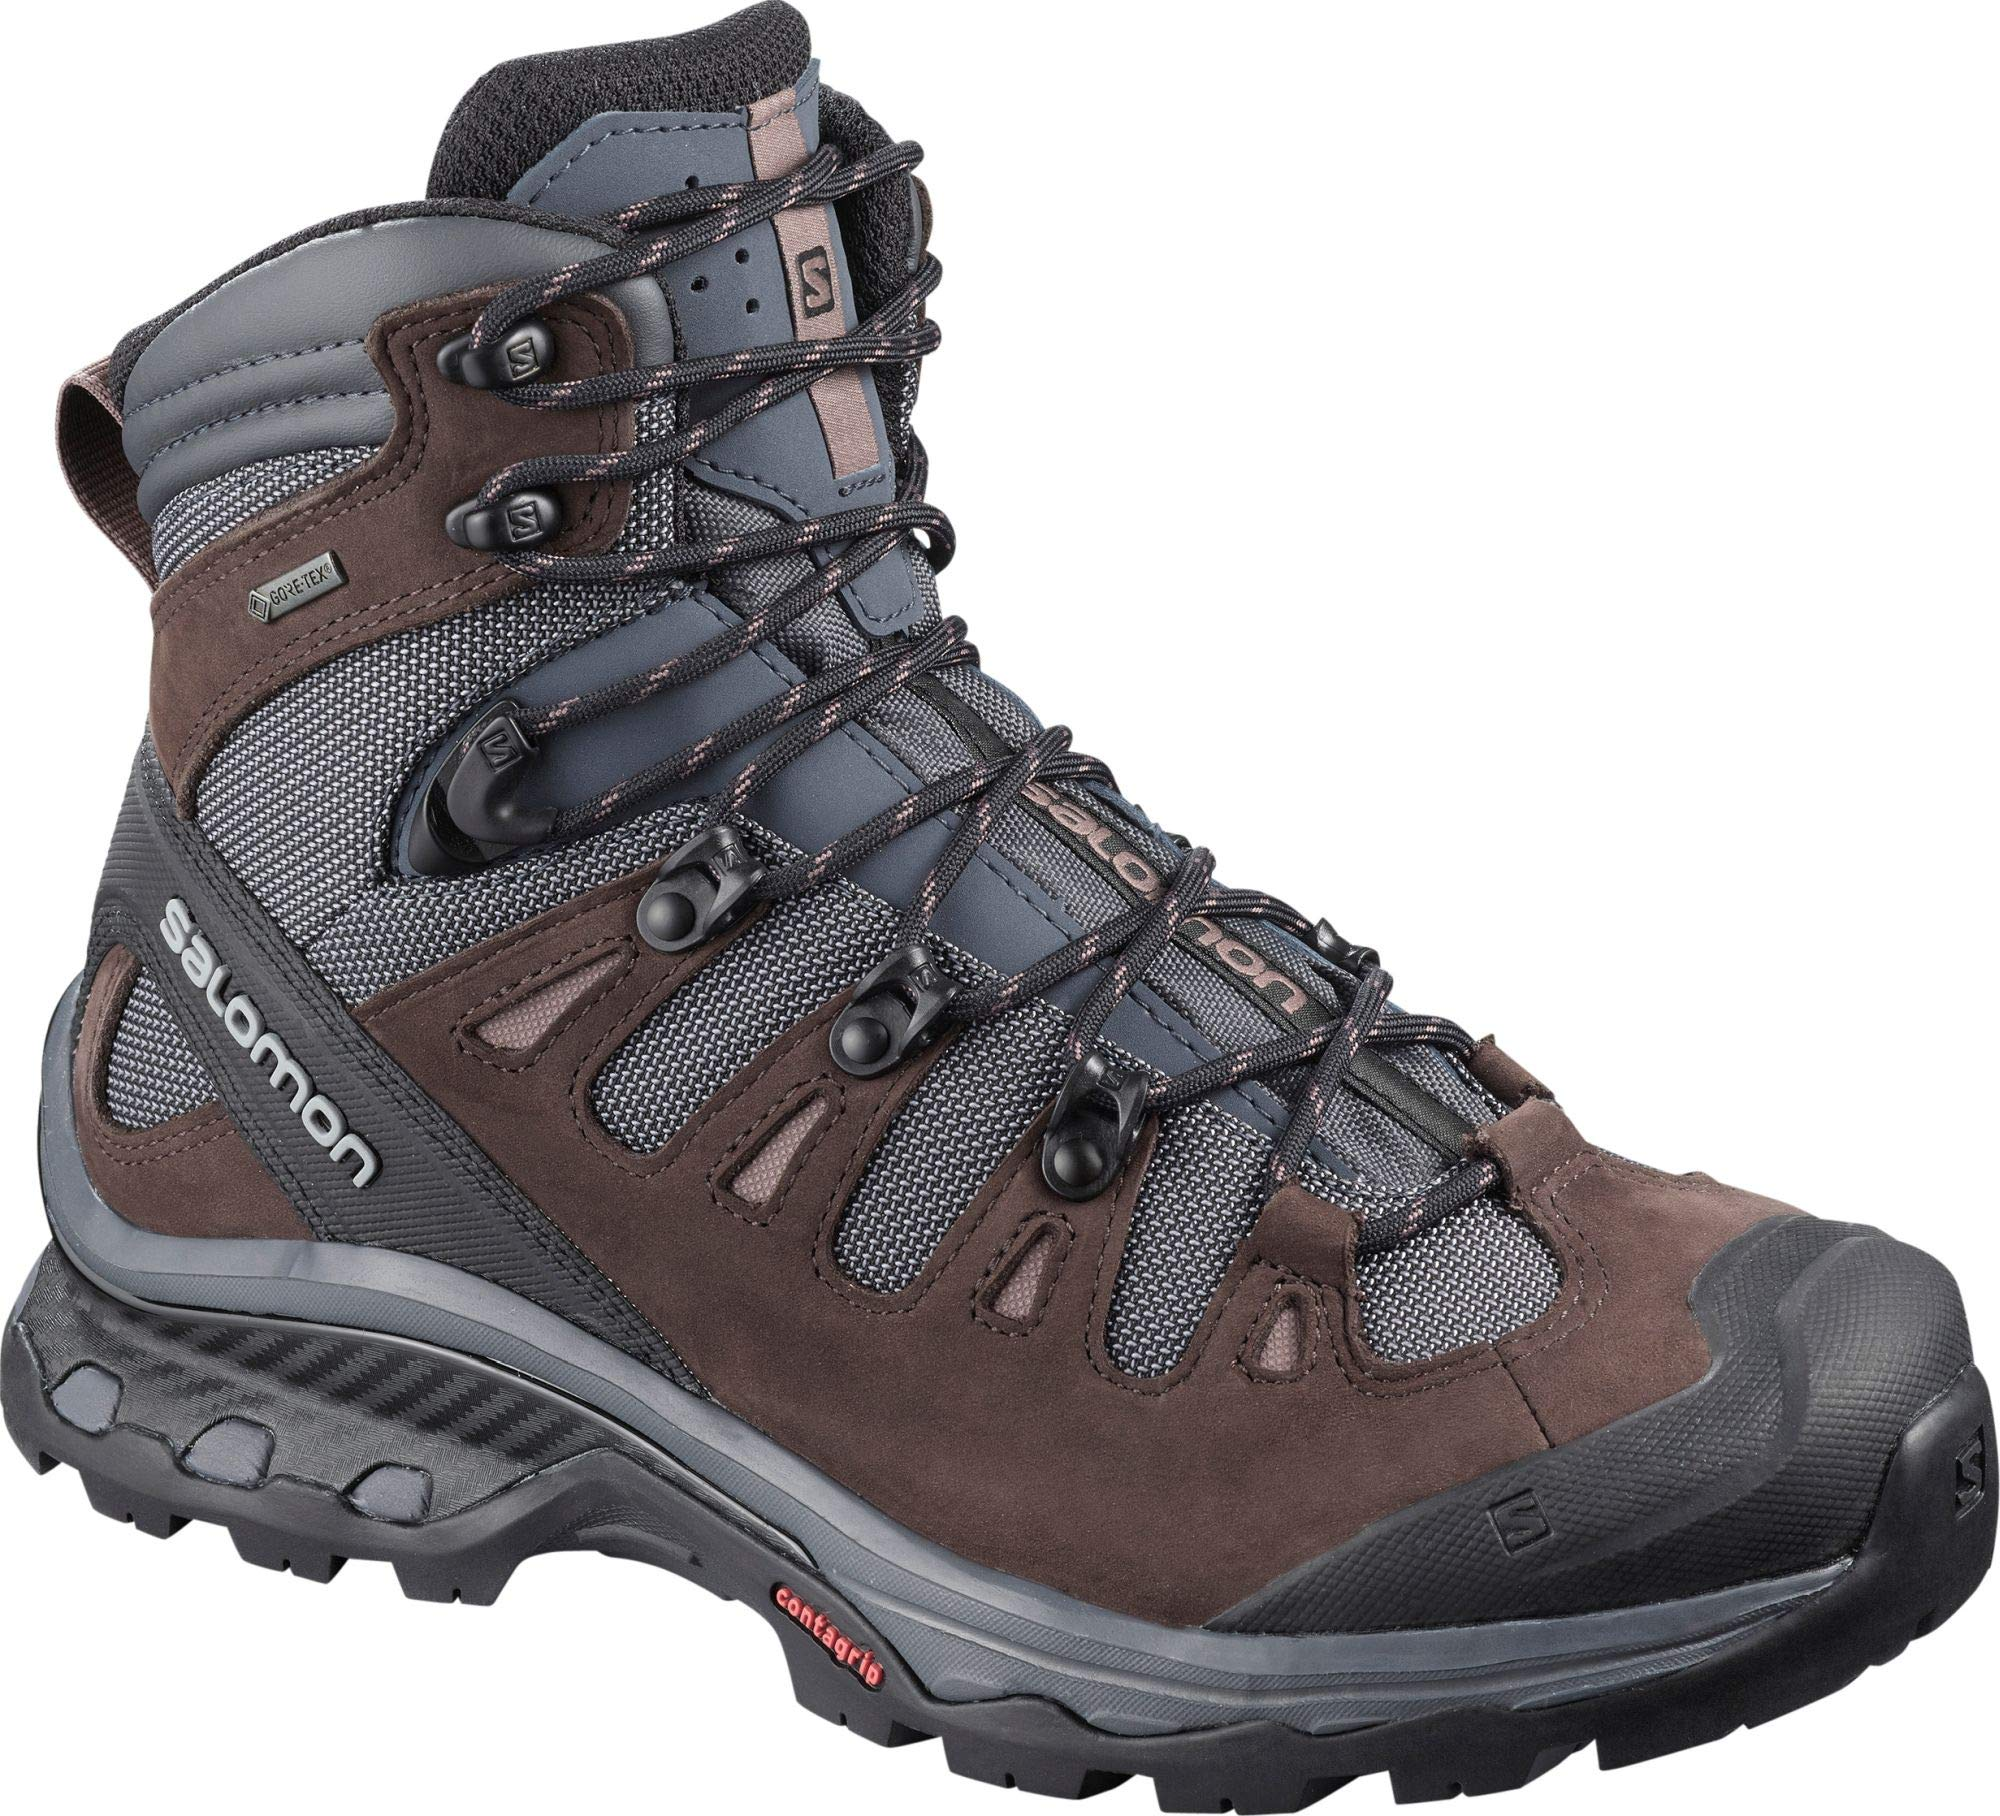 Salomon Women's Quest 4D 3 GTX Backpacking Boots, Ebony/Chocolate Plum/Peppercorn, 9 by SALOMON